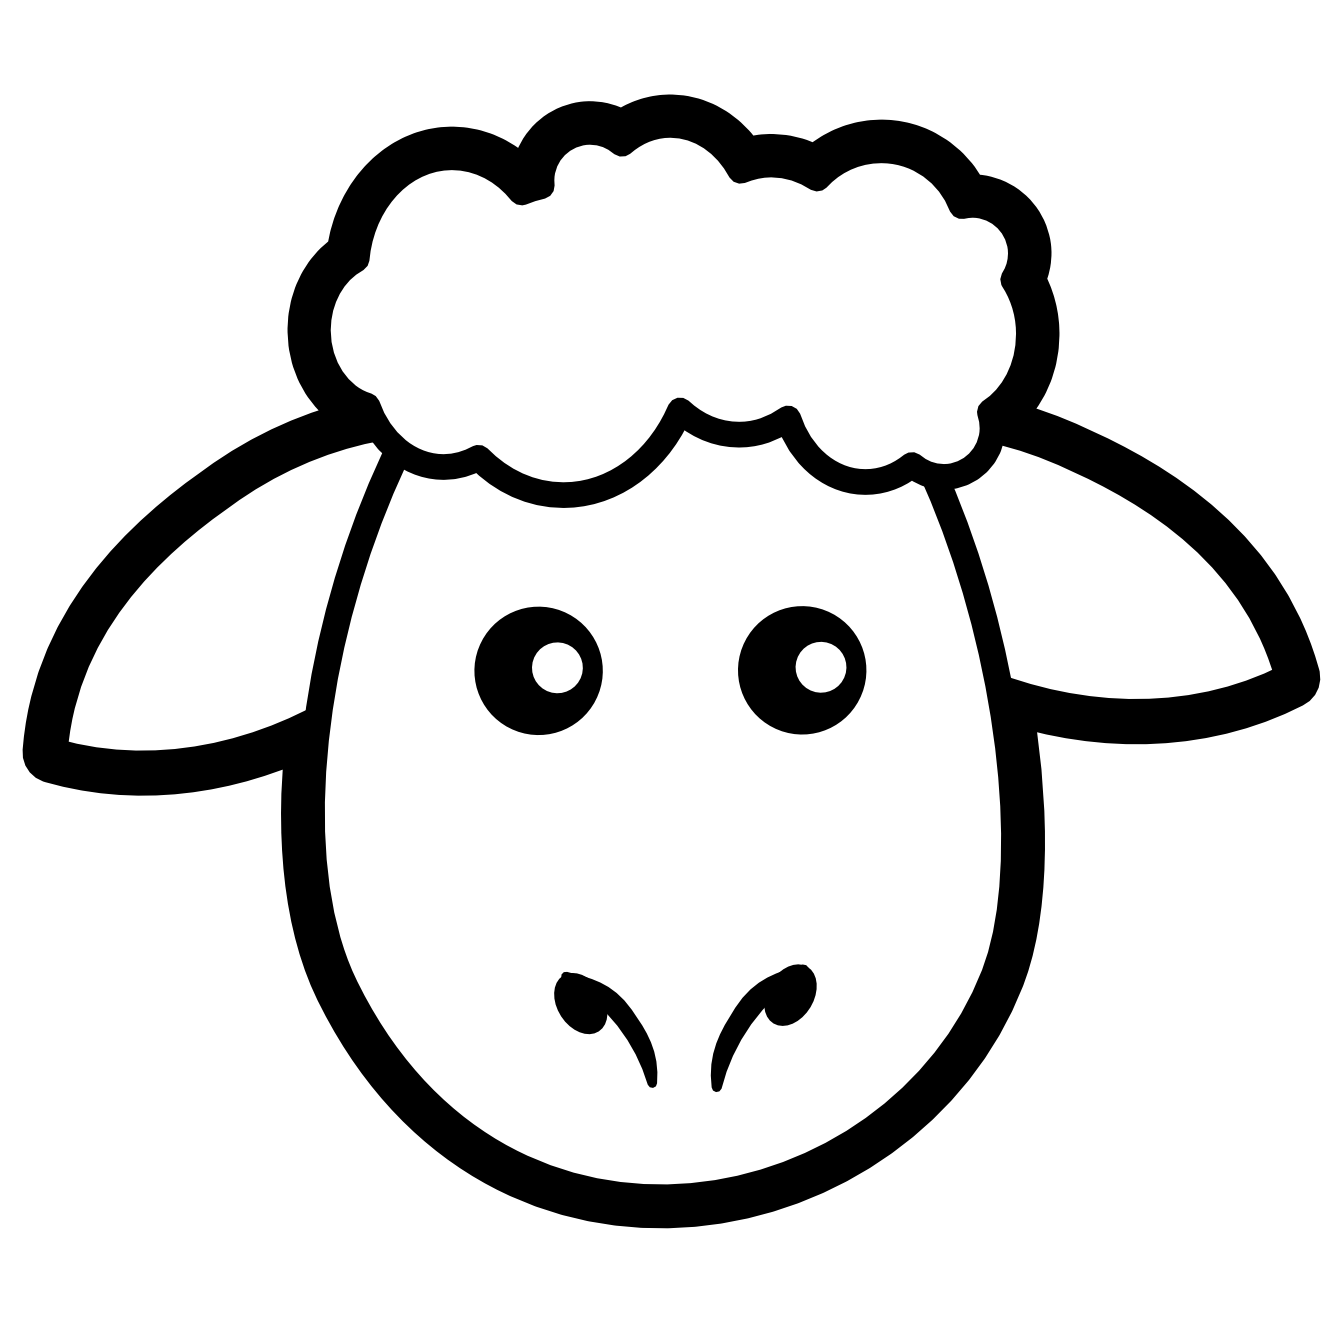 Book with face clipart graphic freeuse stock Lamb Face Clip Art | Clipart Panda - Free Clipart Images graphic freeuse stock